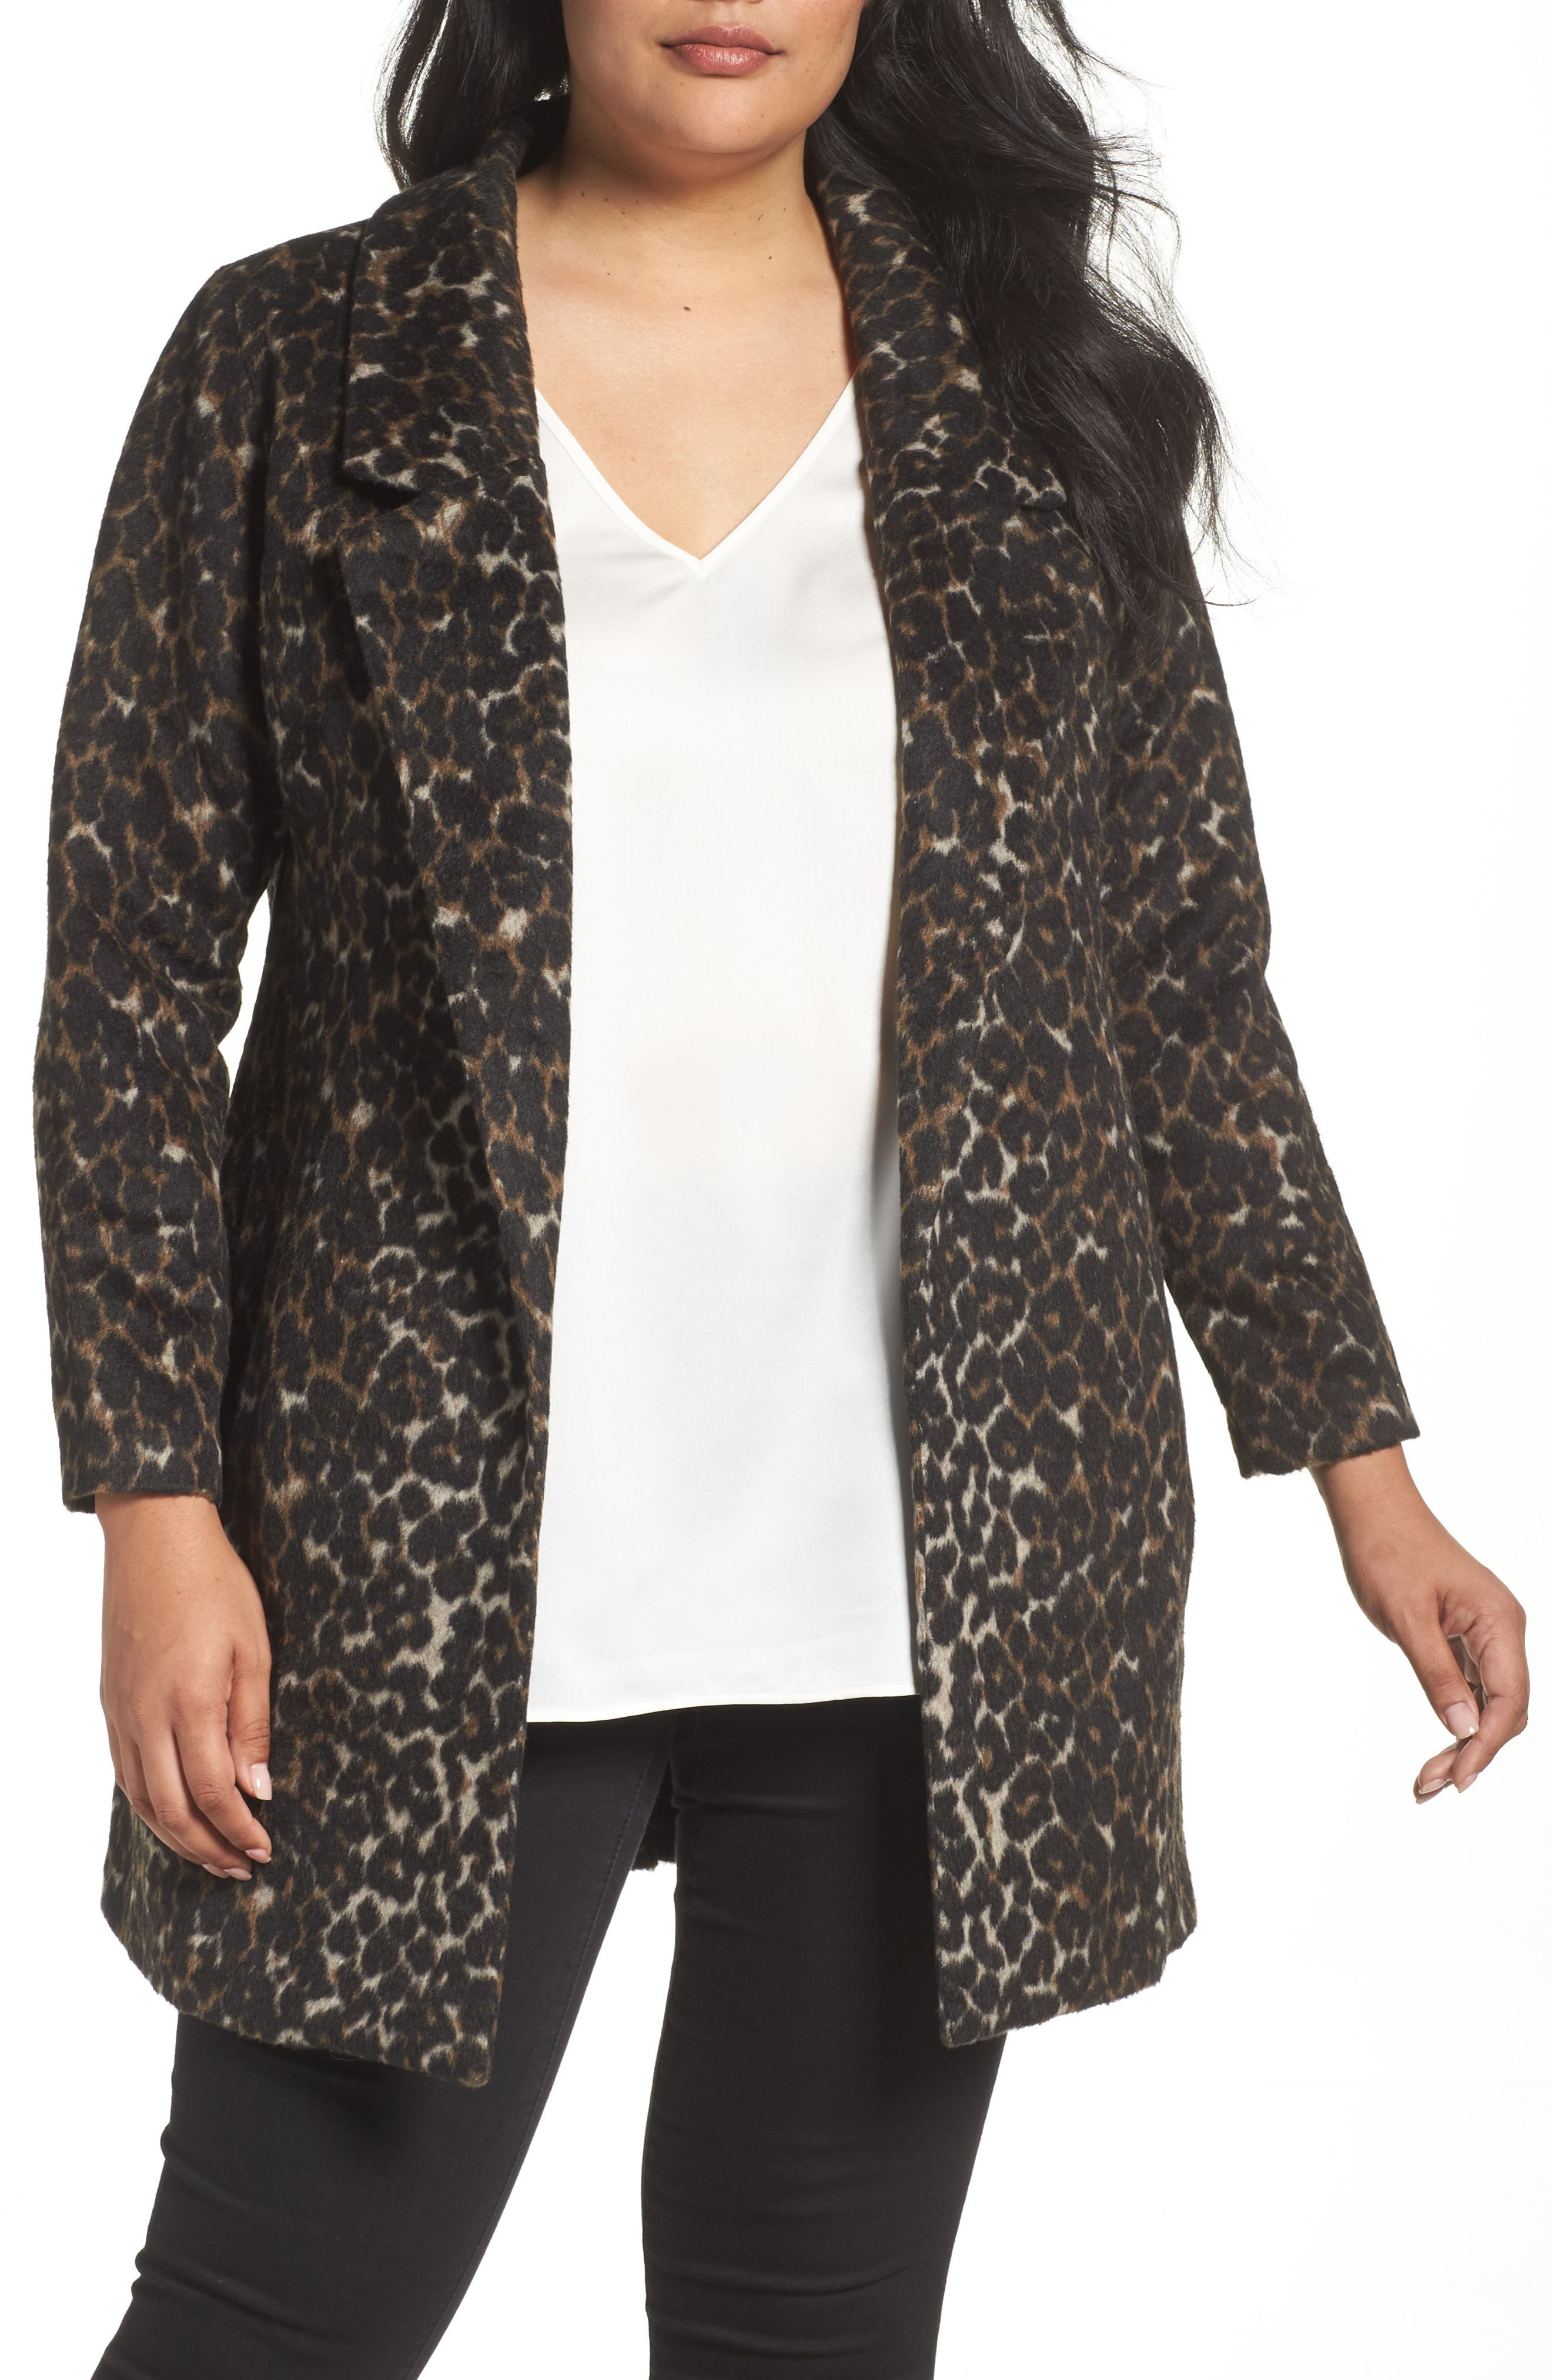 Alternate Image 1 Selected - Sejour Leopard Print Jacket (Plus Size)